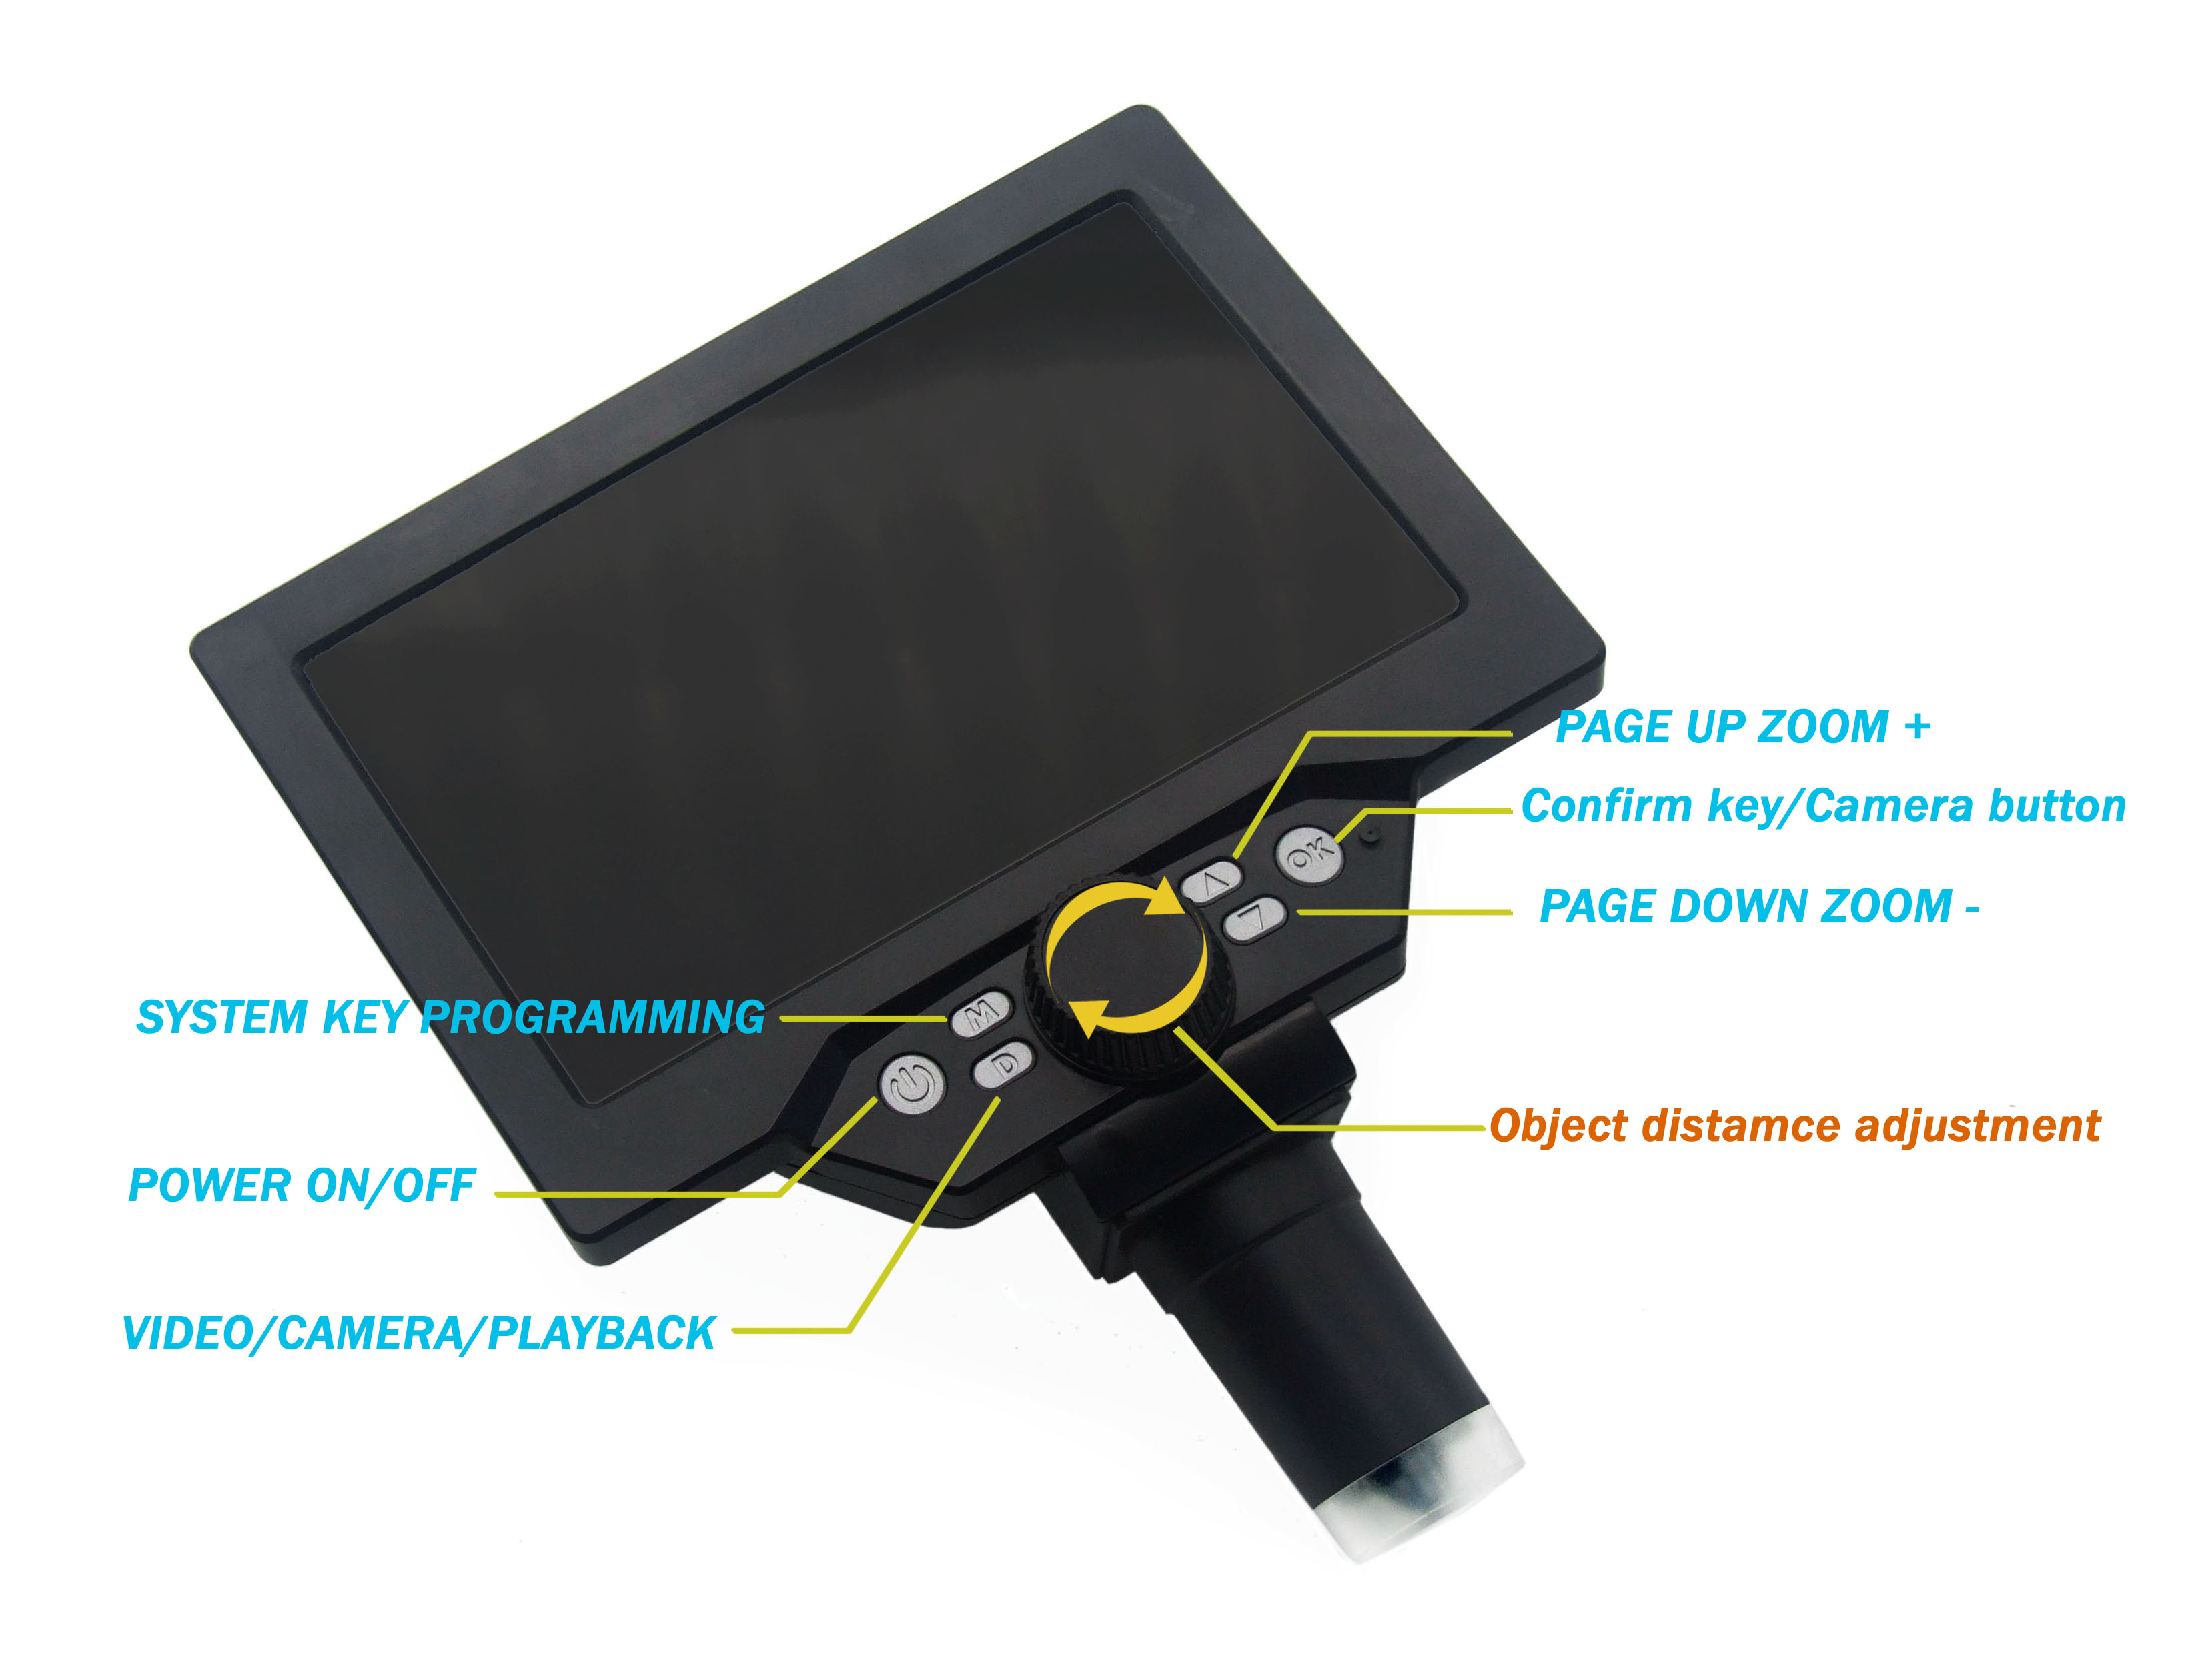 7' HD 12MP 1 1200X LCD Digital Microscope Electronic Video Microscopes Pcb BGA SMT Soldering Phone Repair Magnifier Alloy Stand - 2